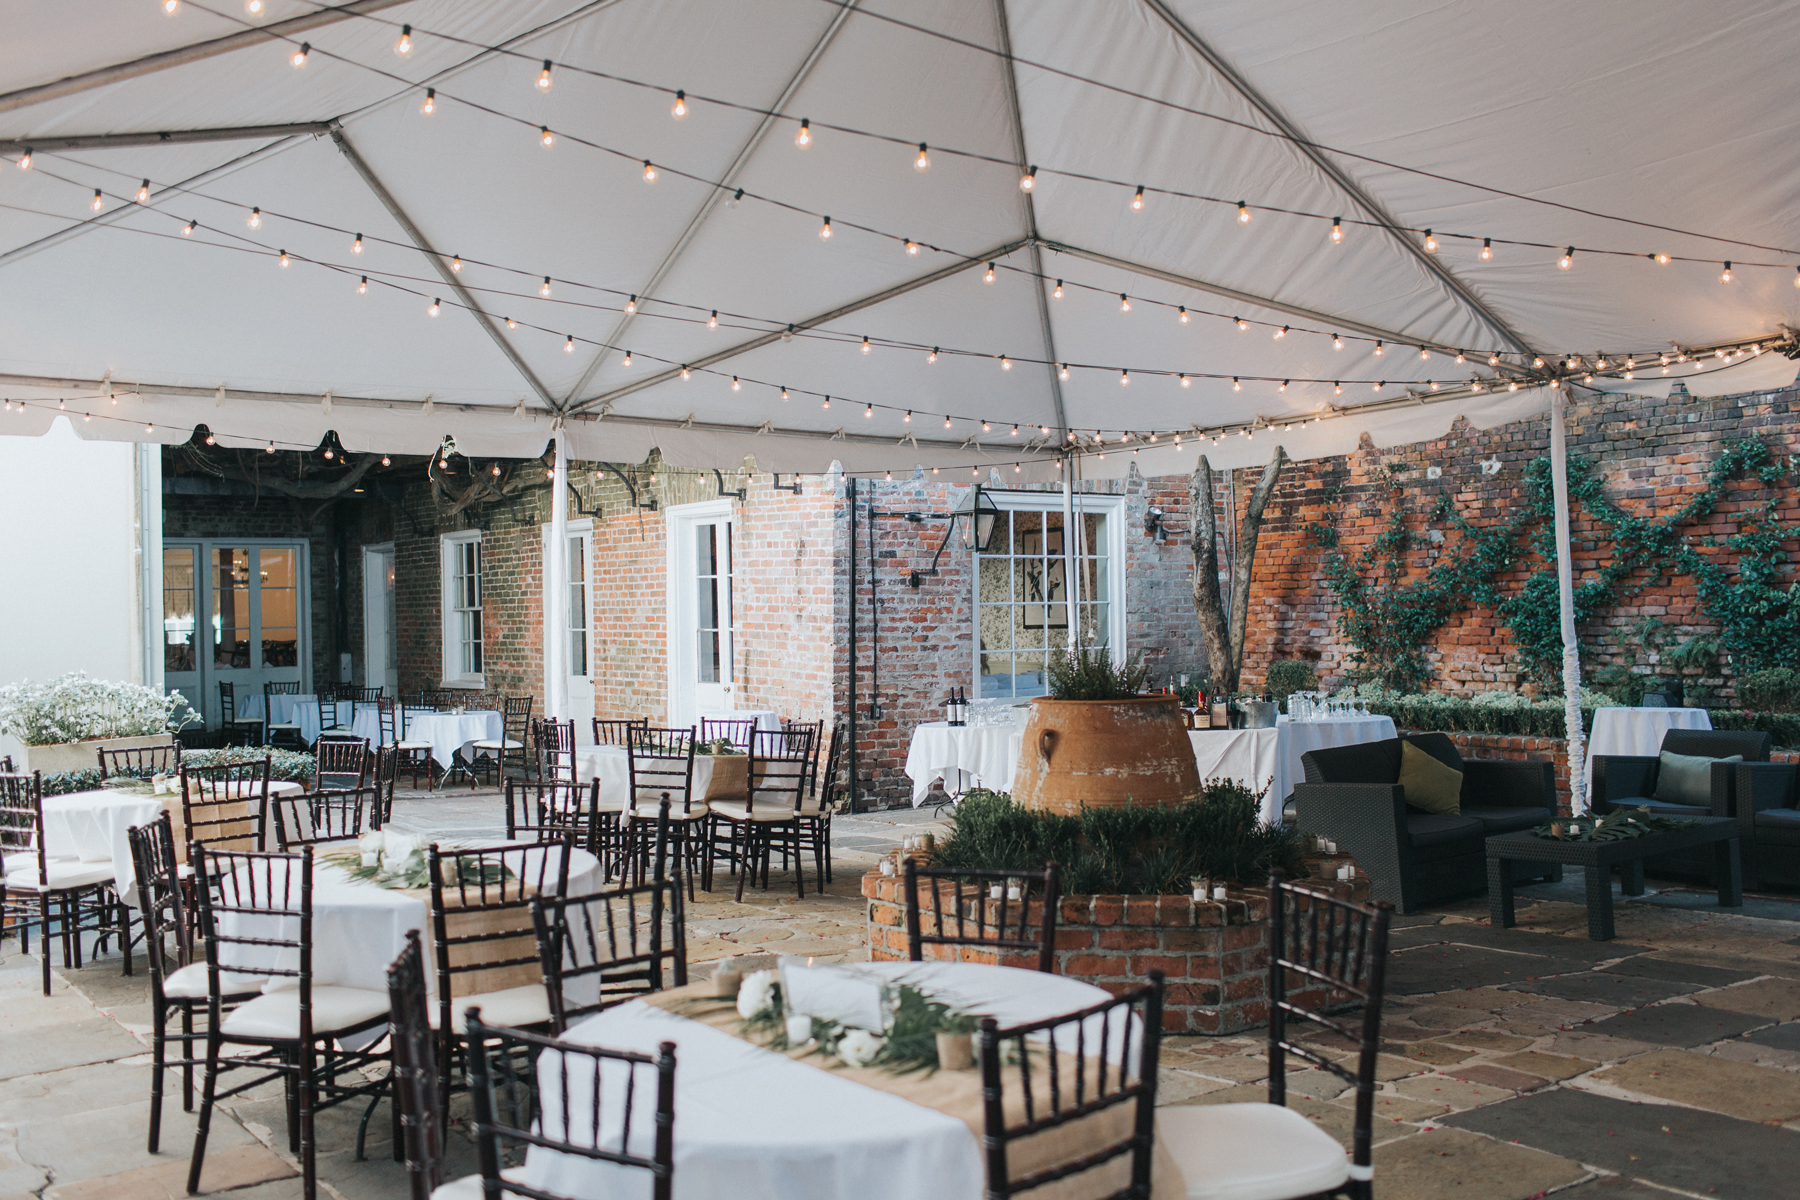 wedding reception setup beneath white tent with string lights